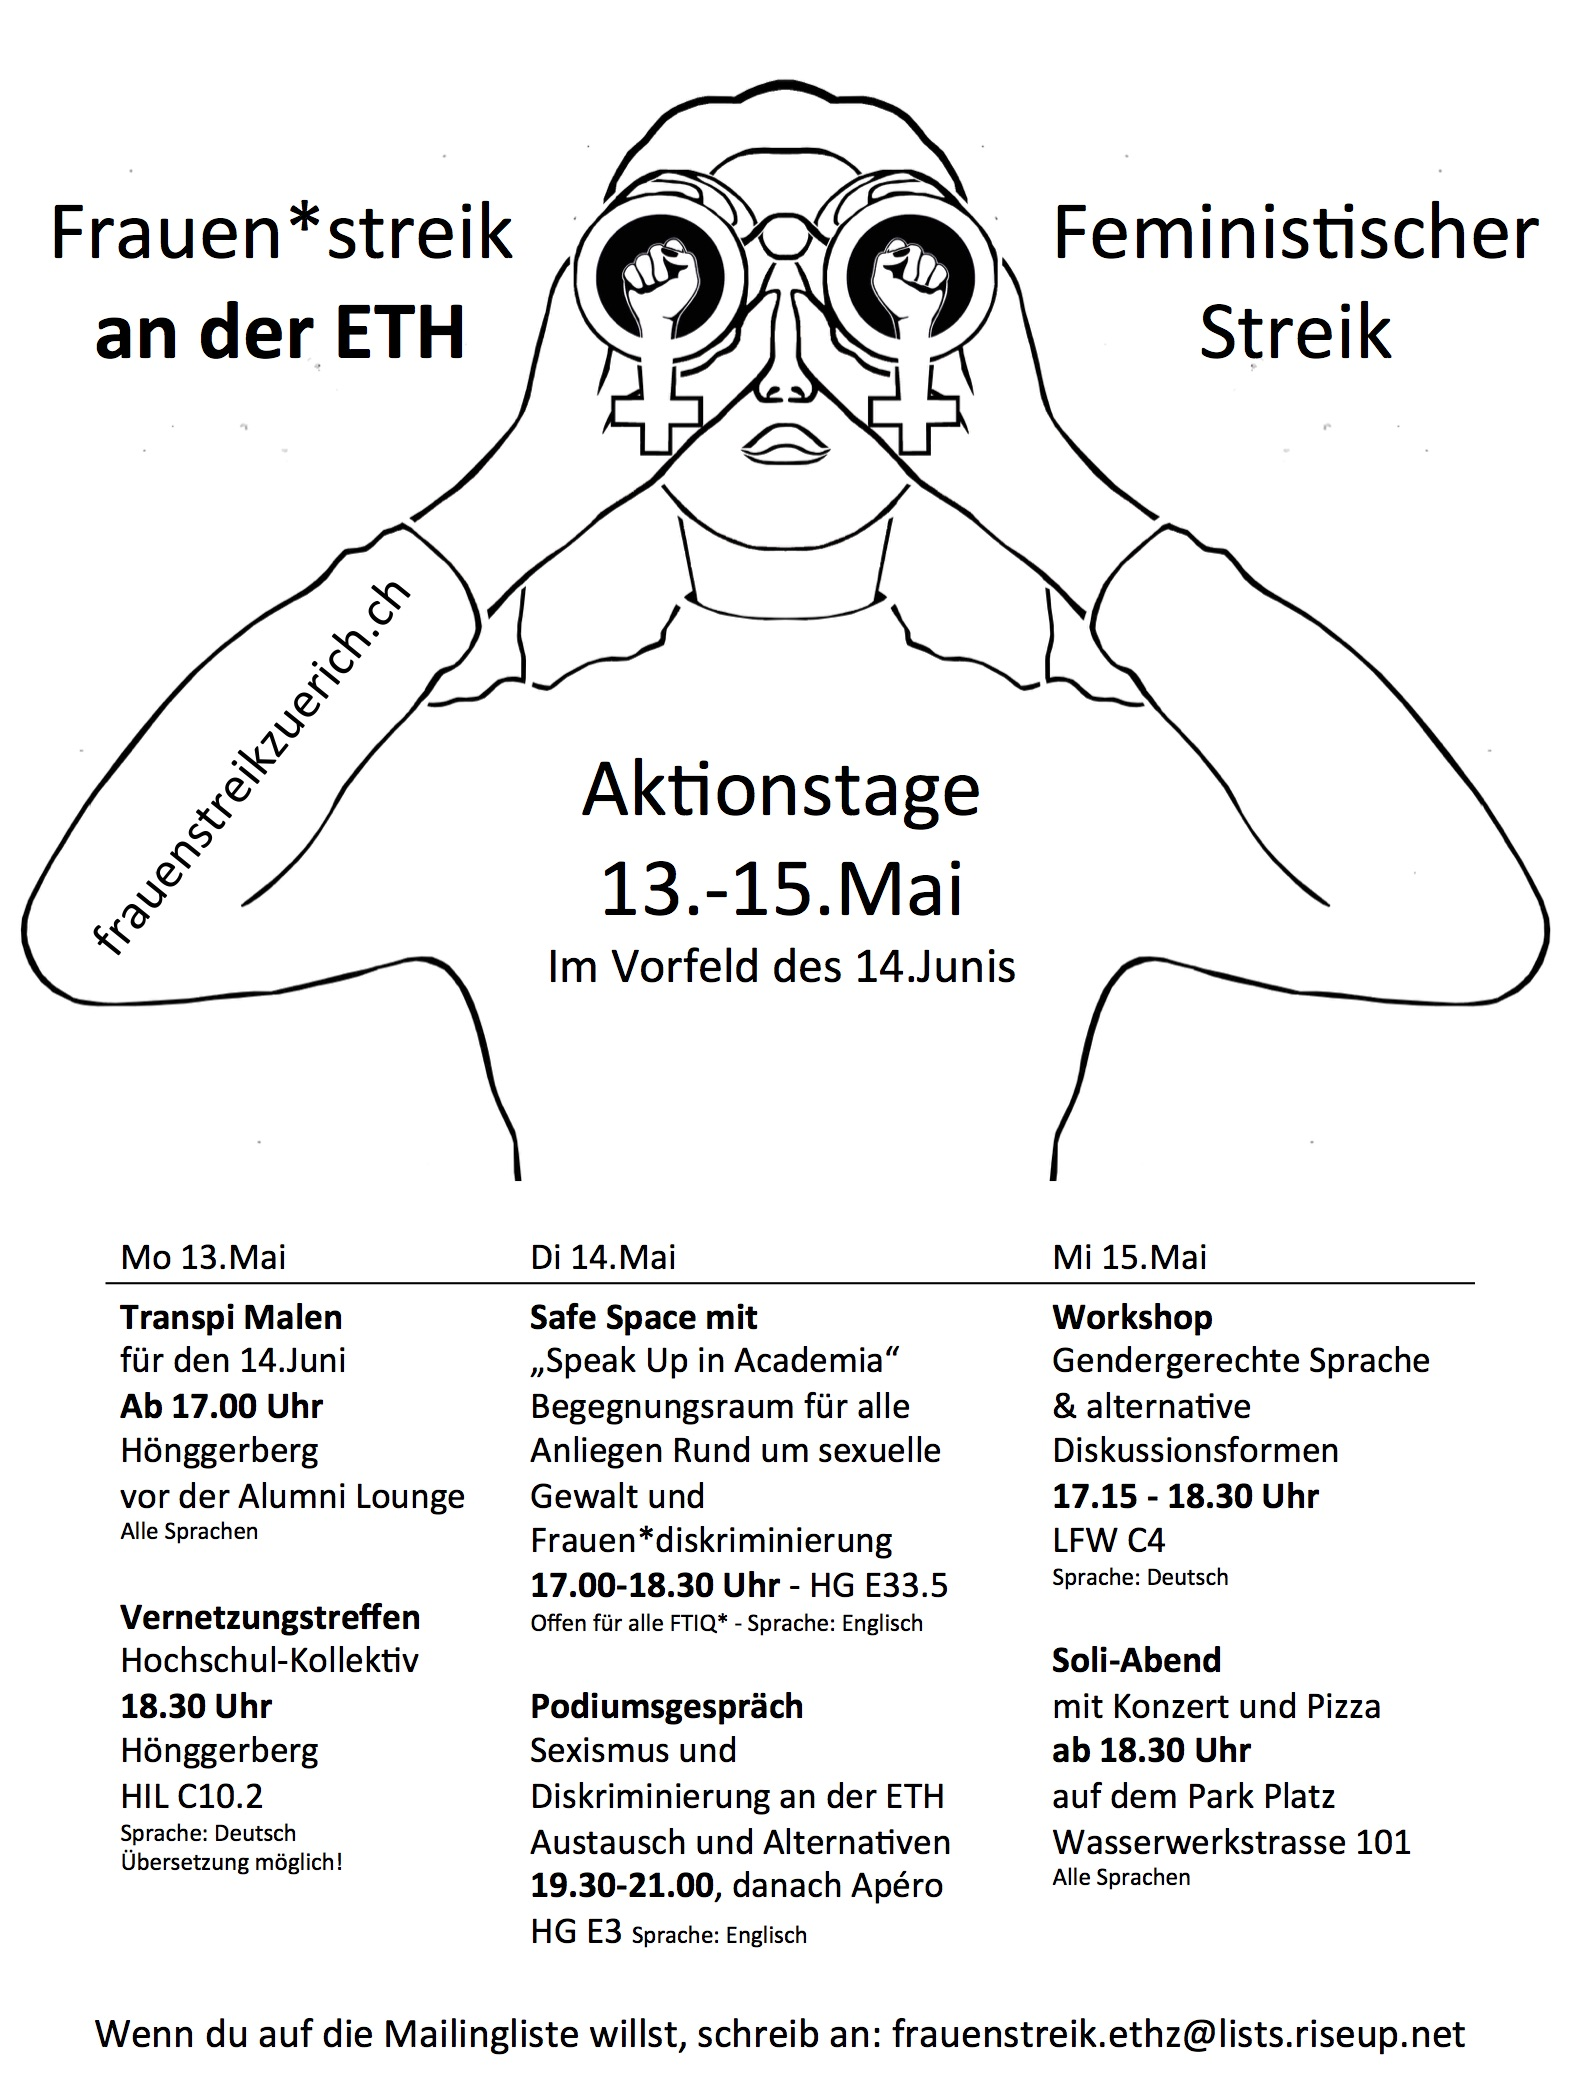 Flyer der Aktionstage an der ETH